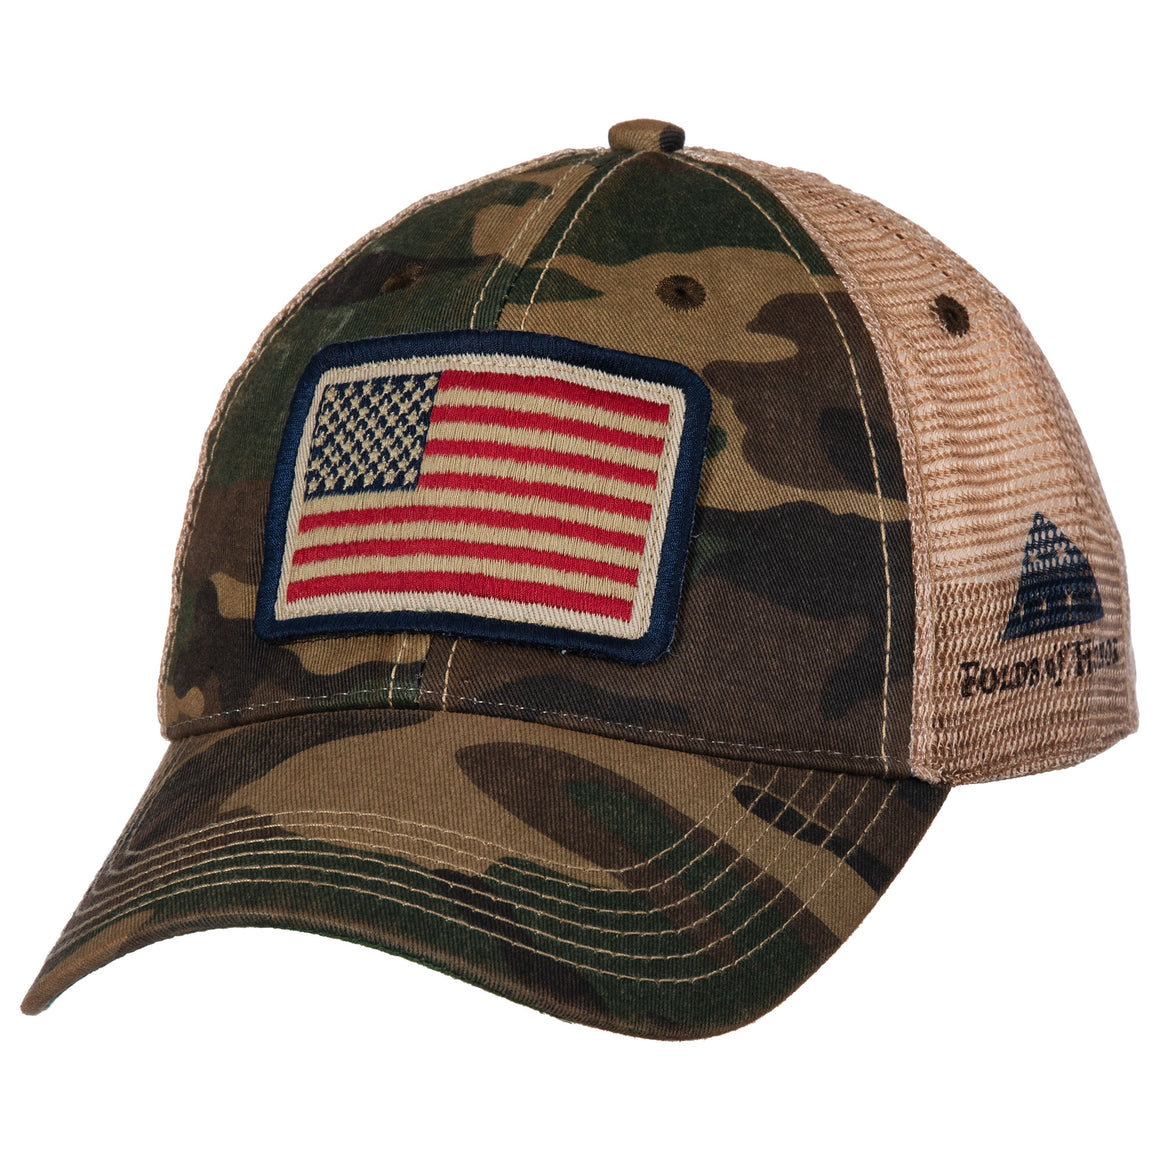 Army Camo Trucker Hat with American Flag